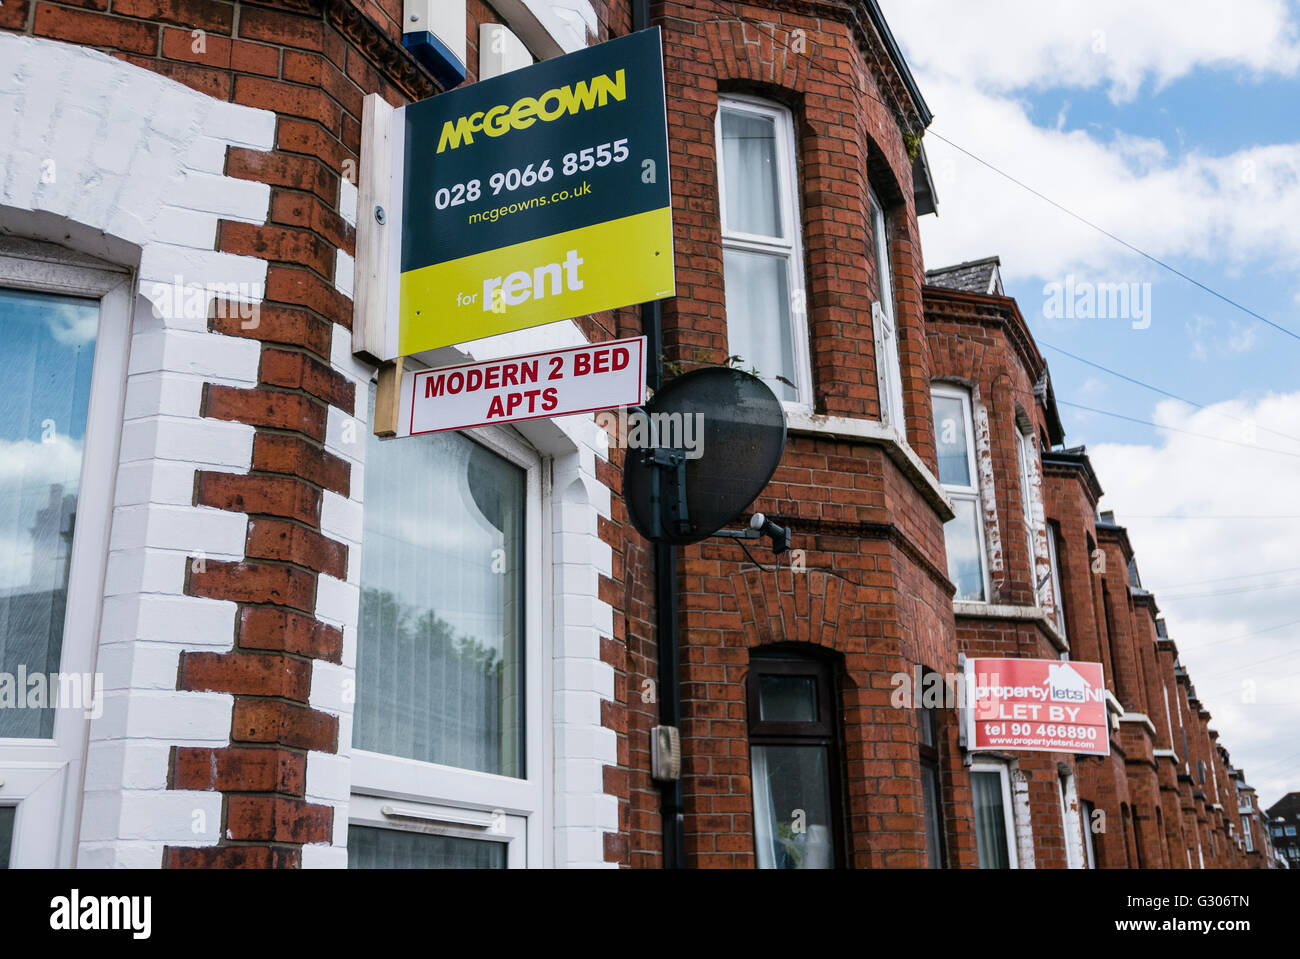 Estate agent signs advertising two-bedroom apartments, two story houses which have been converted into HMOs. - Stock Image